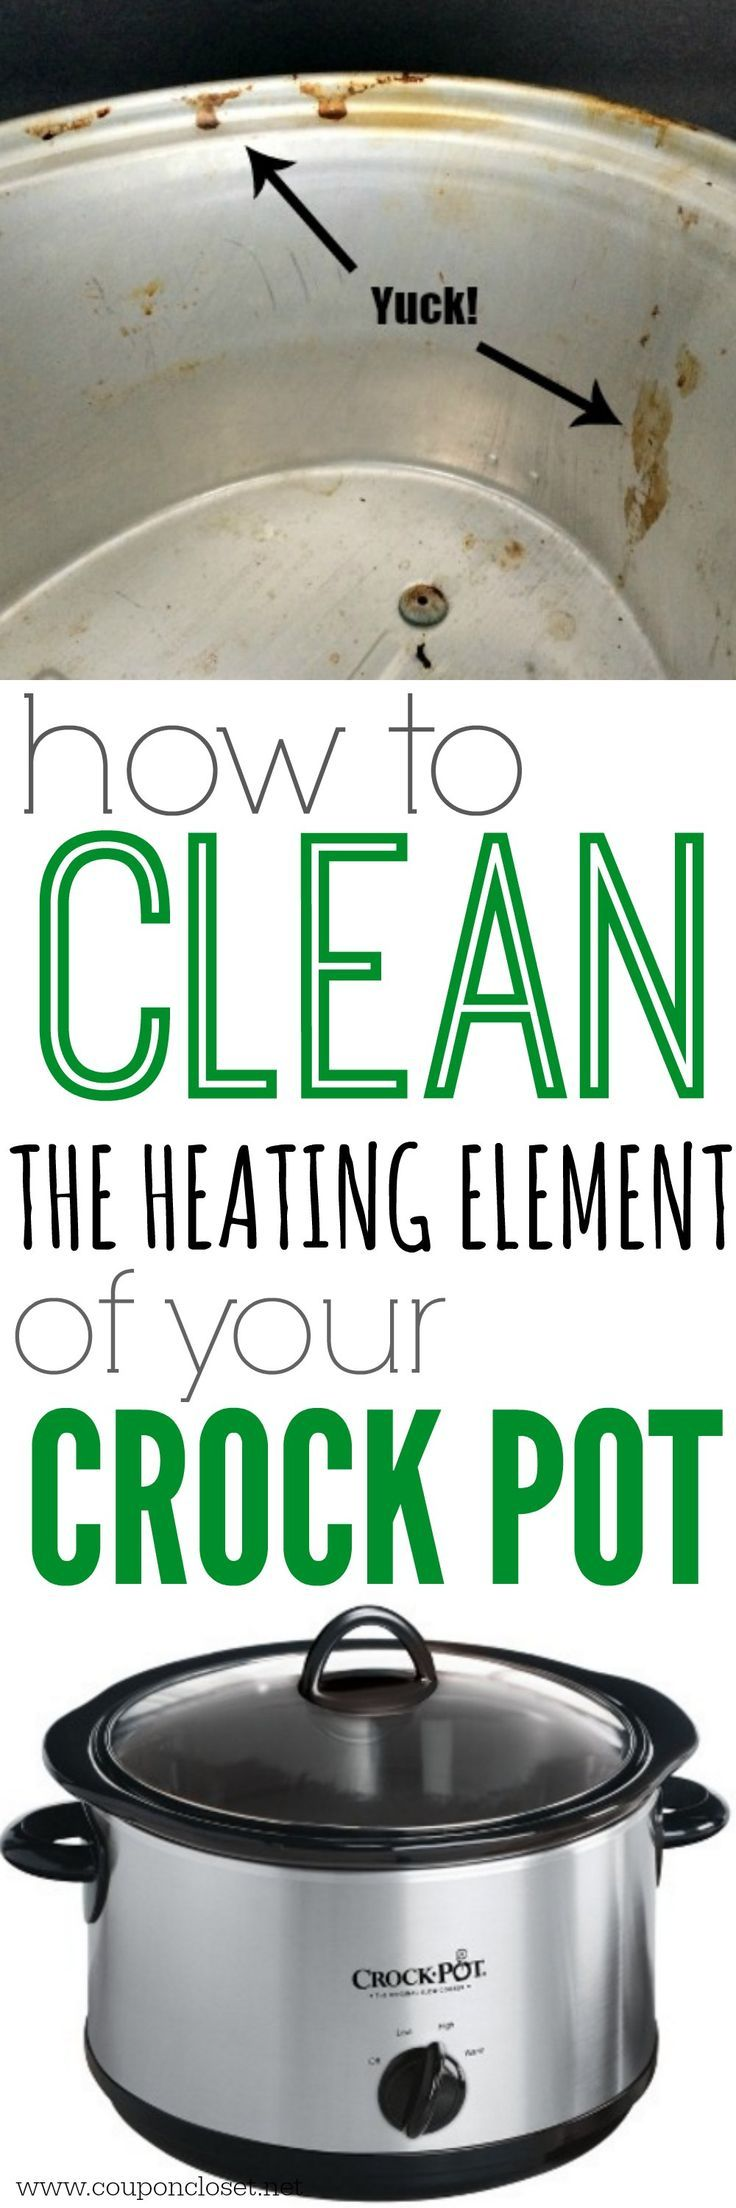 How to Clean inside of Crock pot - yes, you can actually clean the heating element of your crock pot.